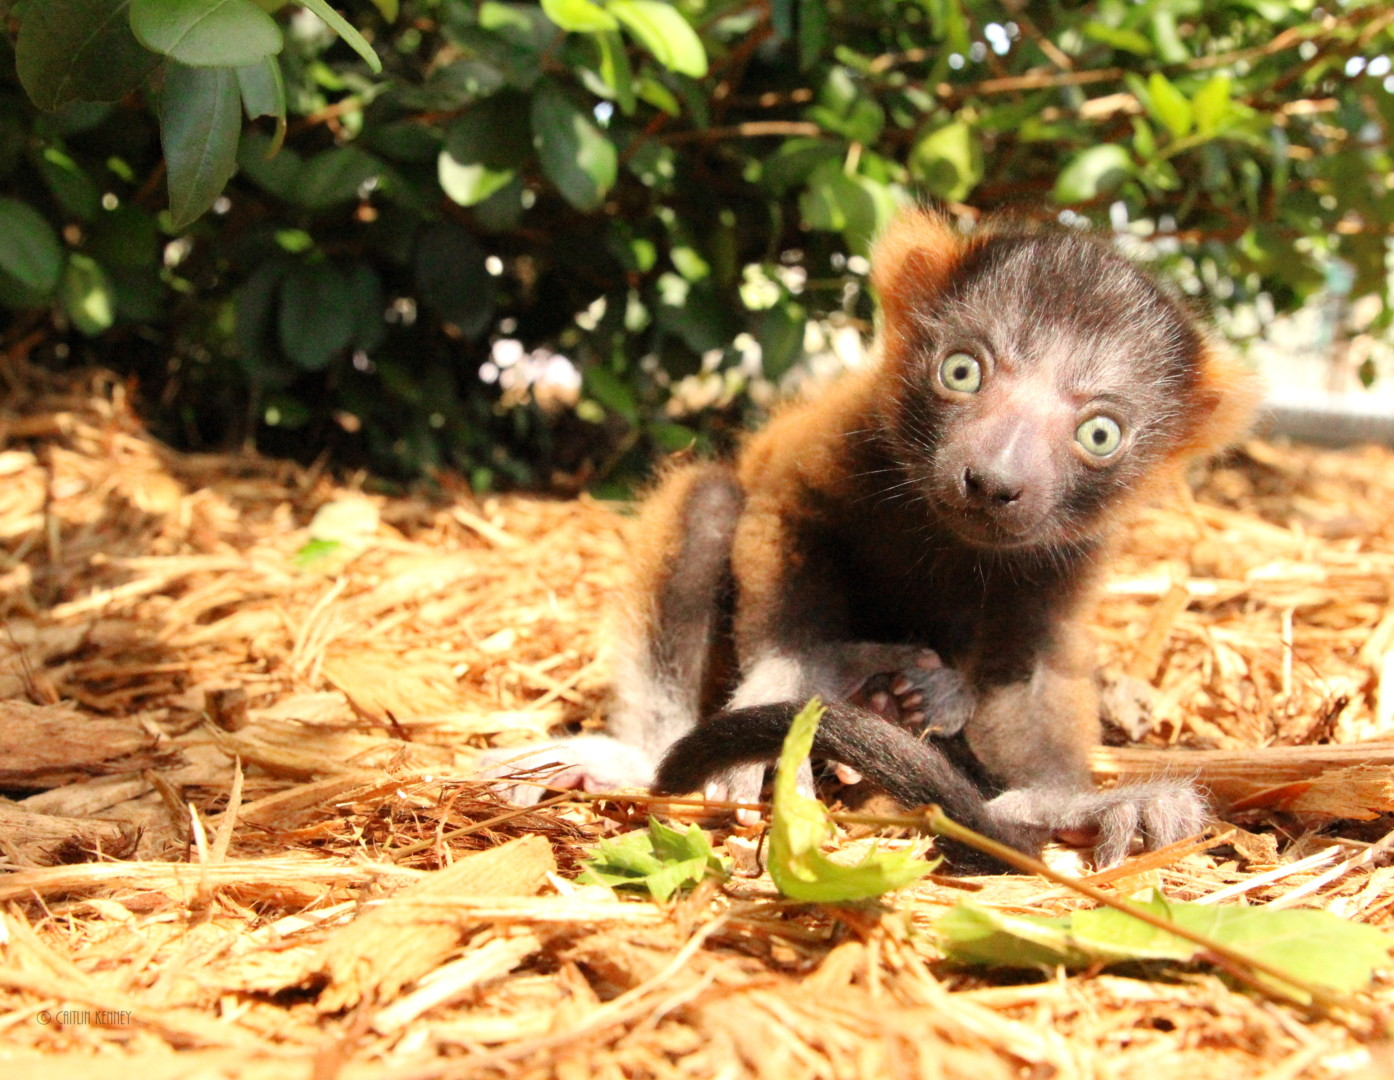 Red ruffed lemur infant sits outside on mulch